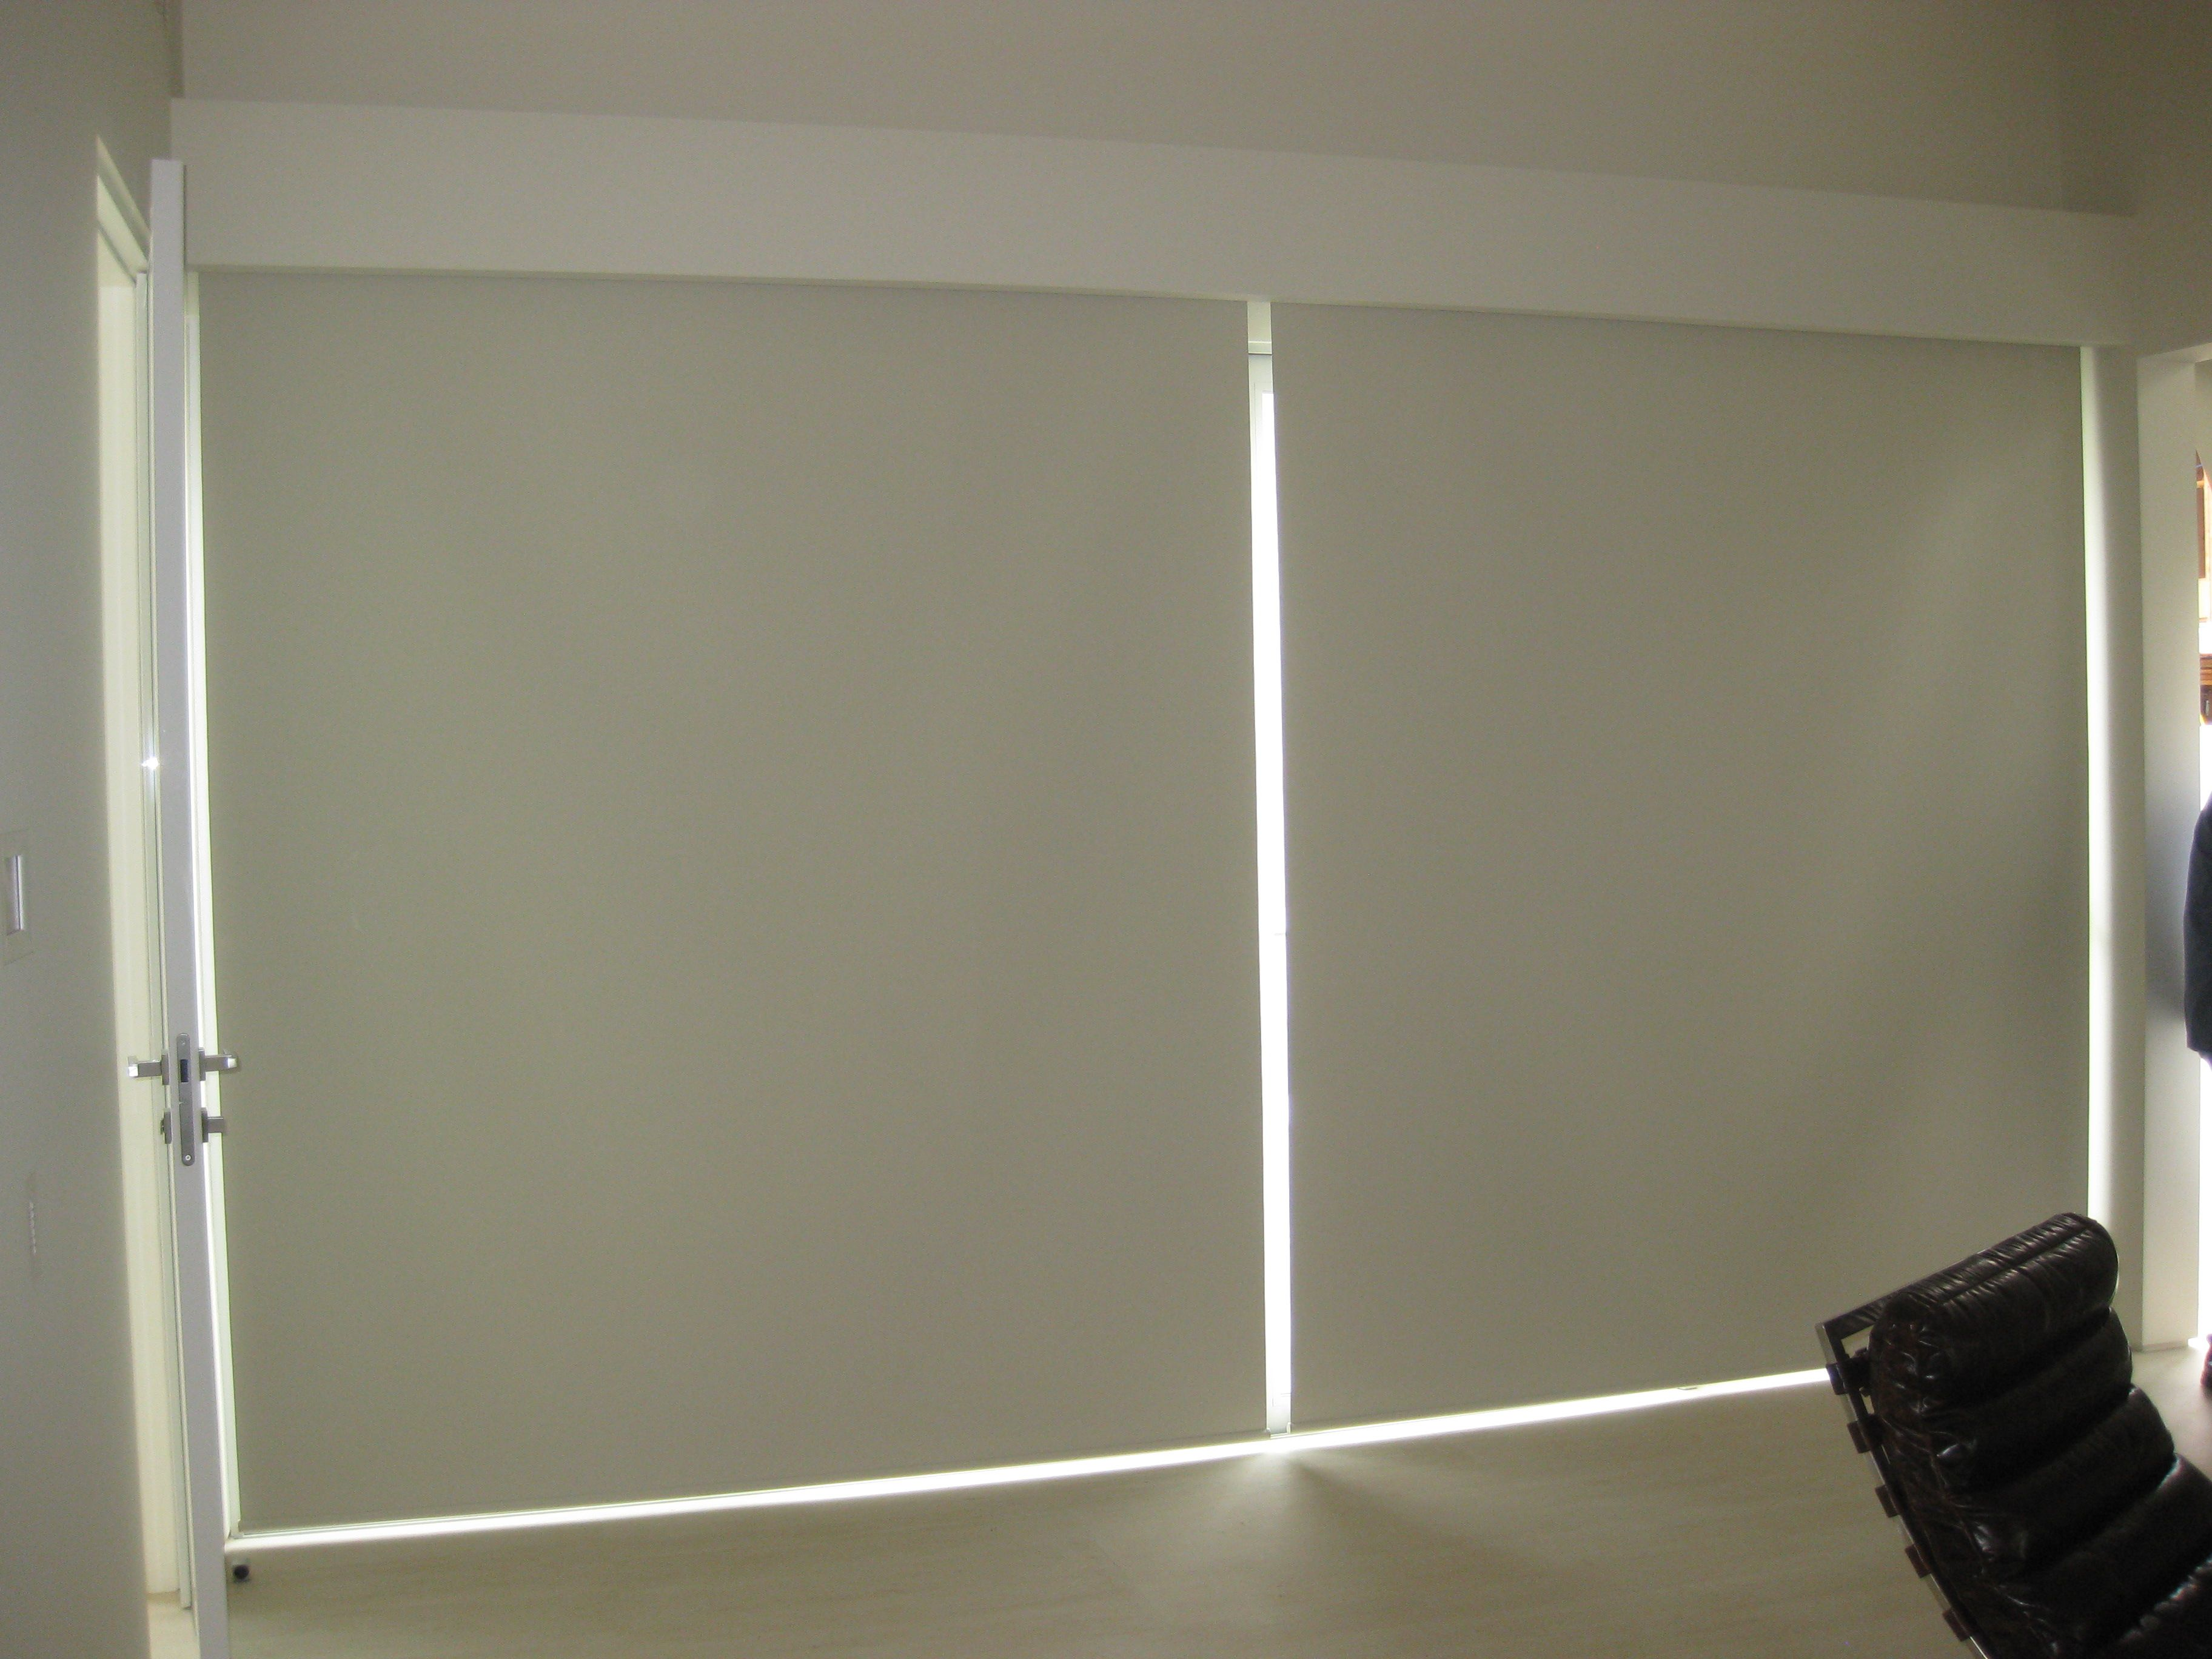 Blackout Roller Shades Blackout Shades Blinds Blackout Roller Shades Sliding Glass Door Roller Shades